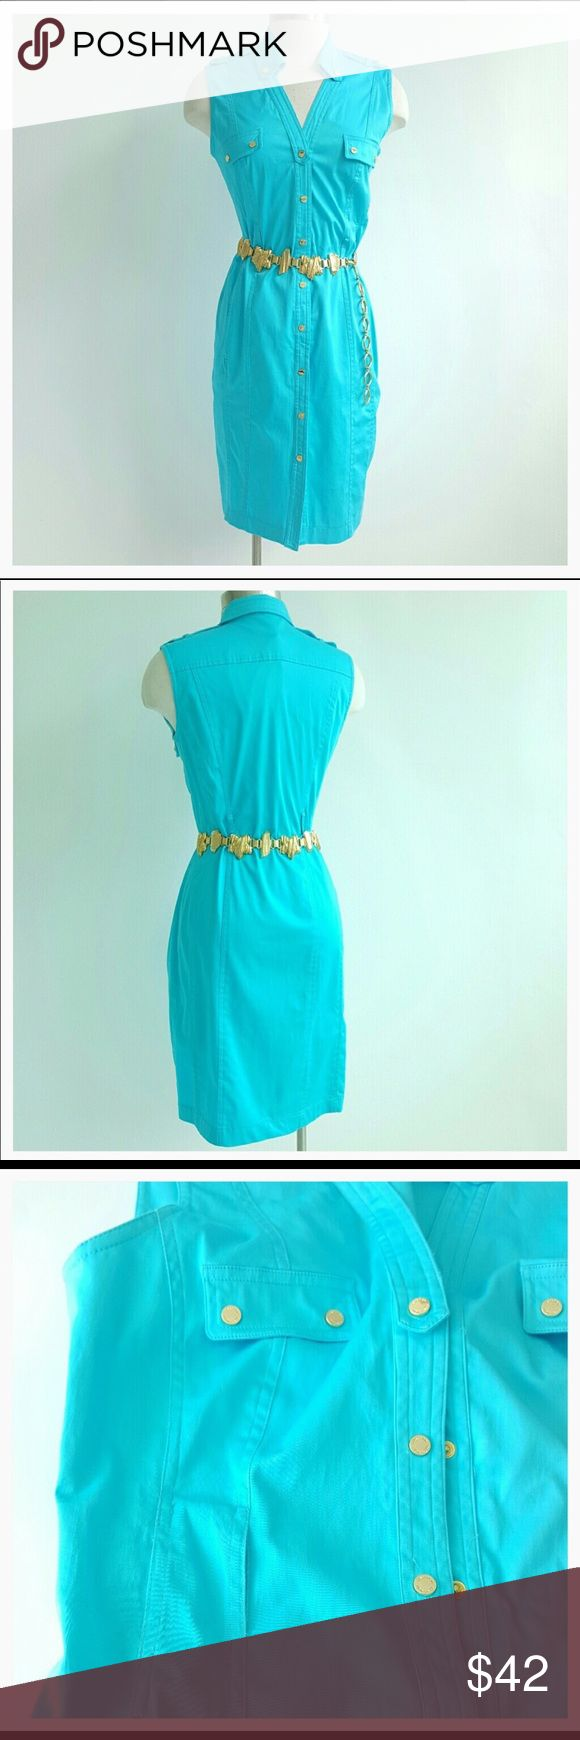 Exquisite Calvin Klein turquoise button down Dress Exquisite Calvin Klein turquoise button down Dress. Beautiful simplicity that will stay in your closet forever. Gorgeous gold tone buttons and side pockets. See photo 4 for additional information. Excellent used condition. Reposh. Please ask questions and look at all photos and descriptions carefully before purchase. 🛍🛍Press like on this or any items in my closet, and follow me, to receive future price updates. Thank you for visiting my…